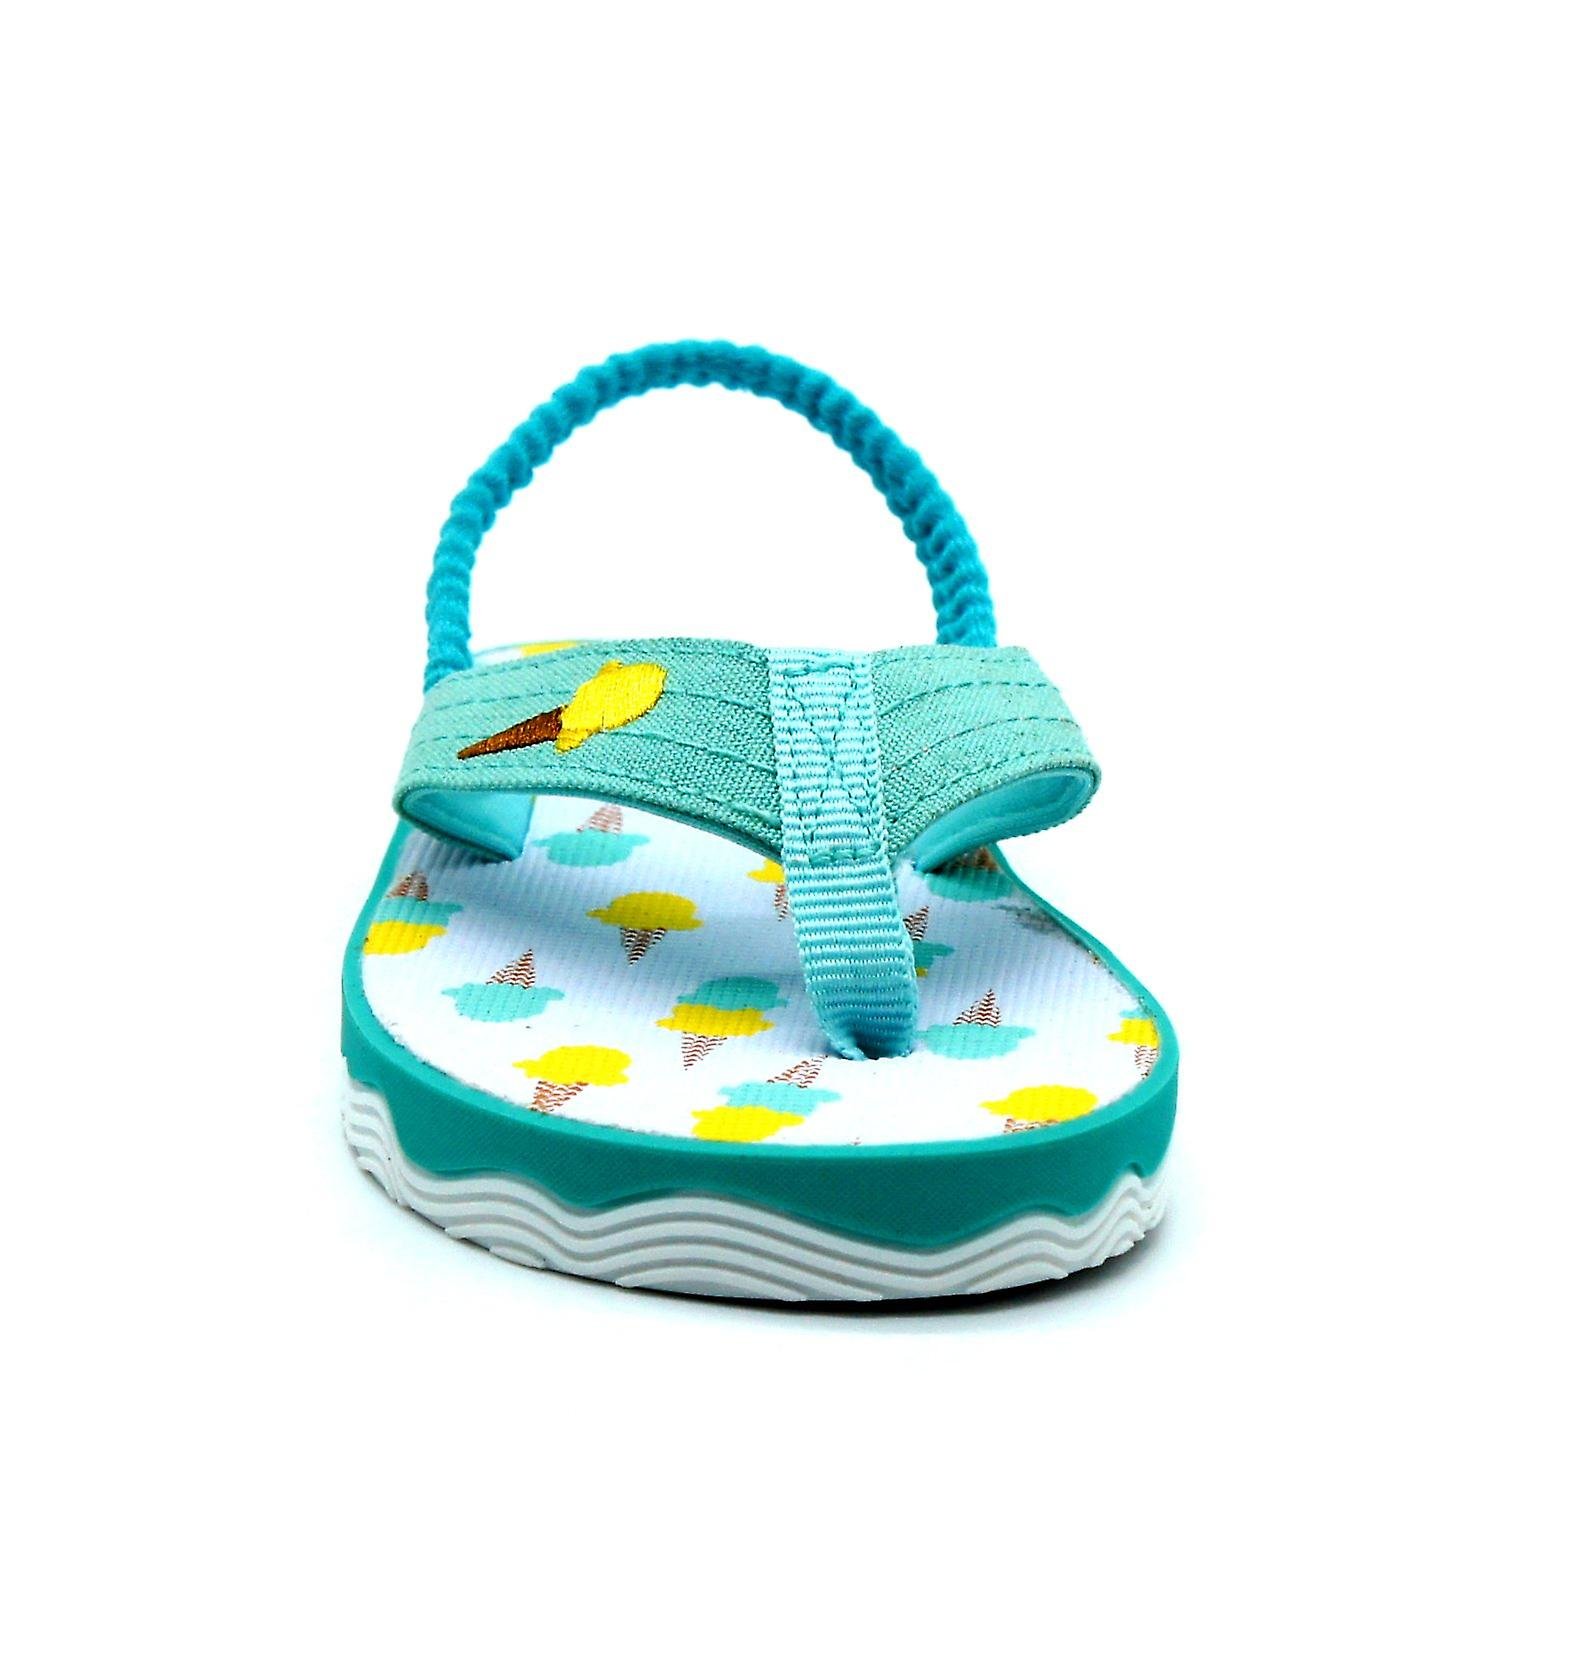 Atlantis Shoes Kids Unisex Girls & Boys Supportive Cushioned Comfortable Sandals Flip Flops Ice Cream Lover Green